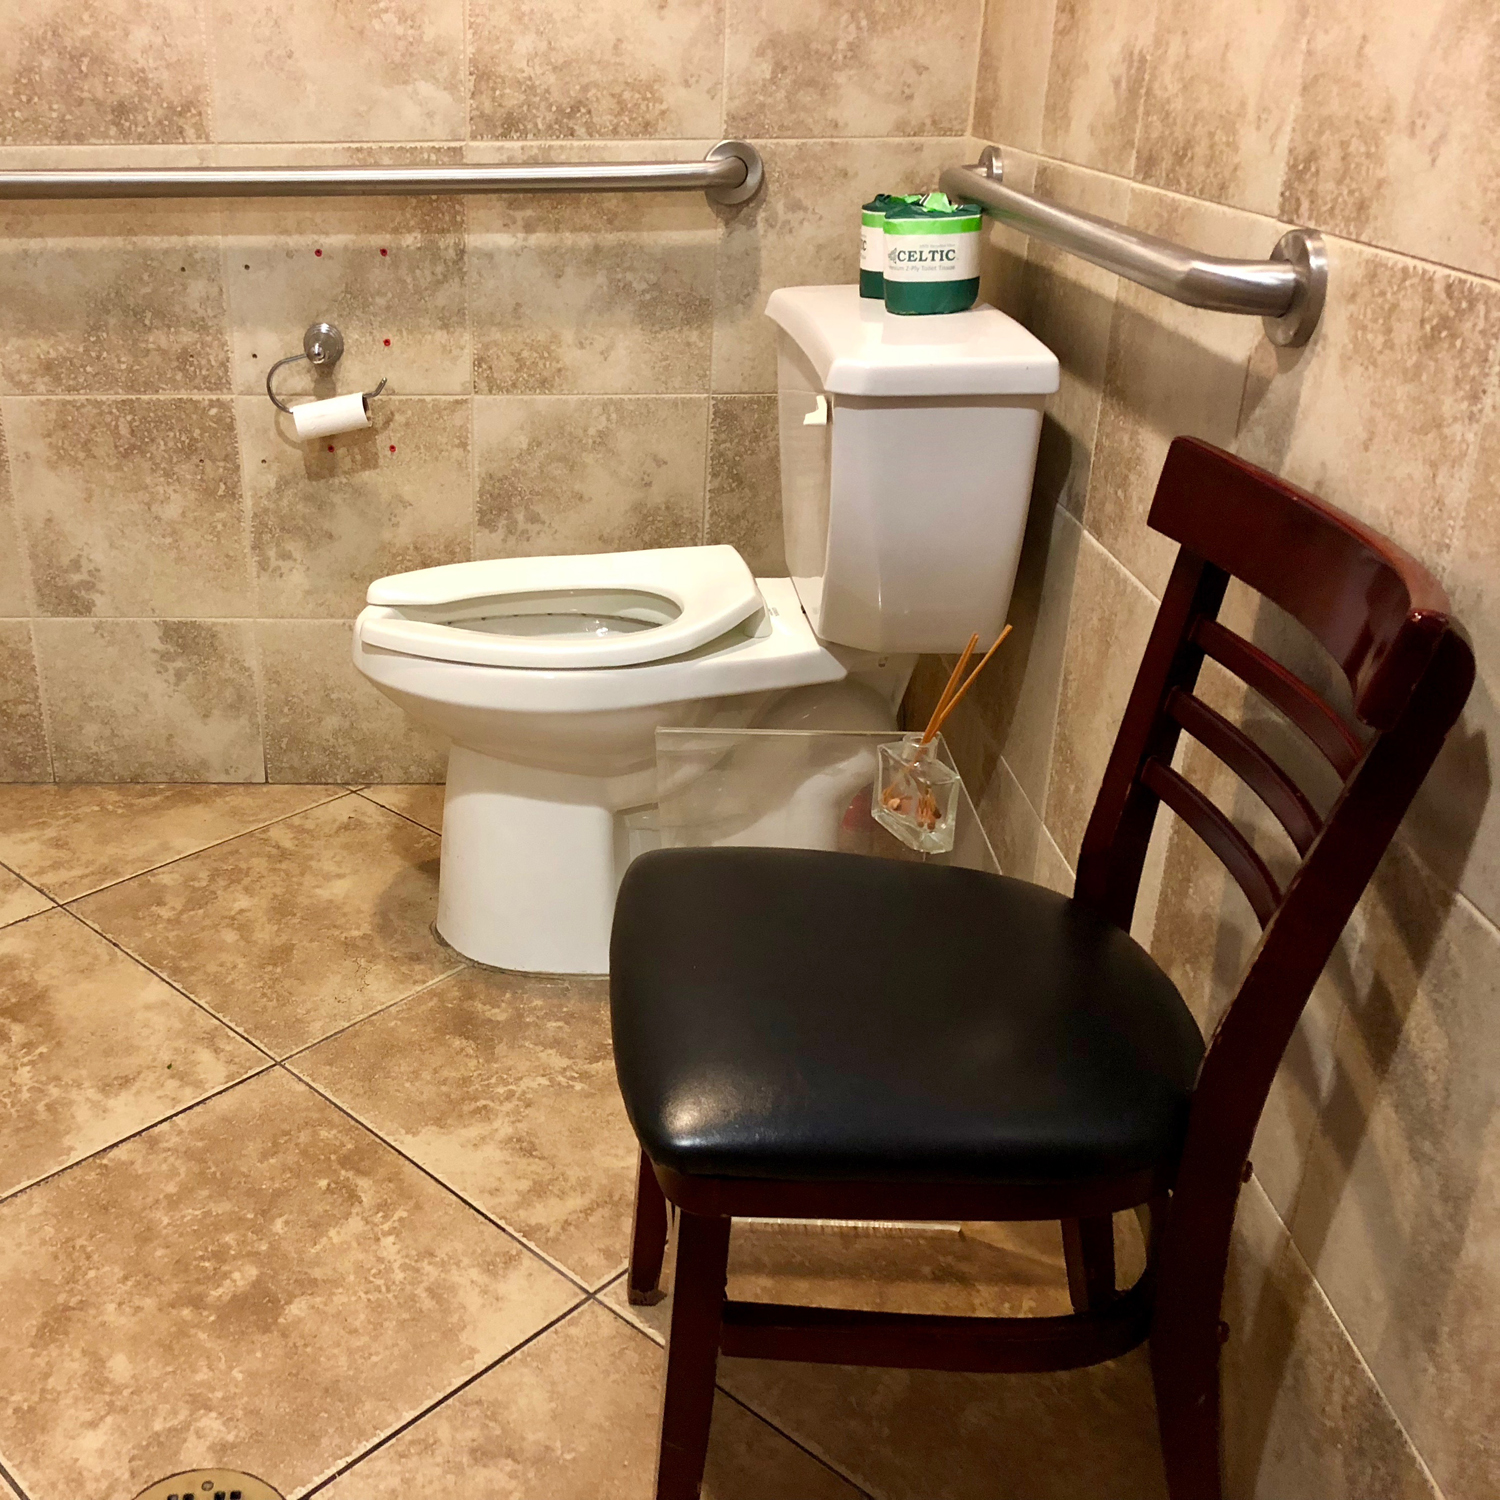 Restroom with a toilet and a chair